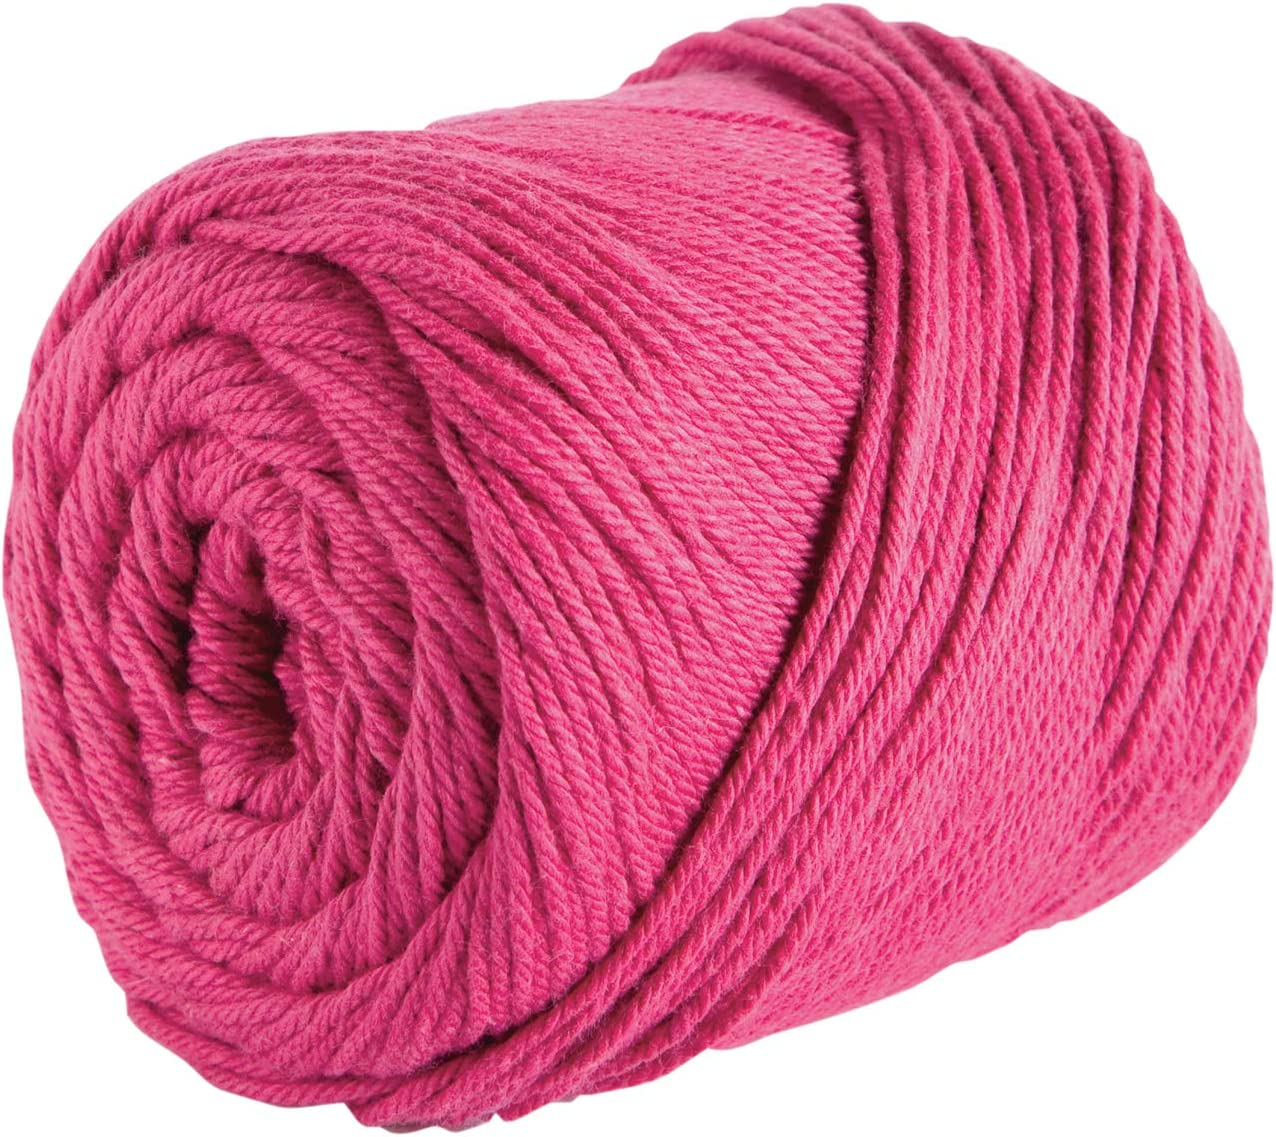 Cotton Yarn Crochet, | Iris Purple 3 Solid Colors Coral Bordeaux Red WorstedMedium Weight 2.5 oz Each Assortment for Knitting